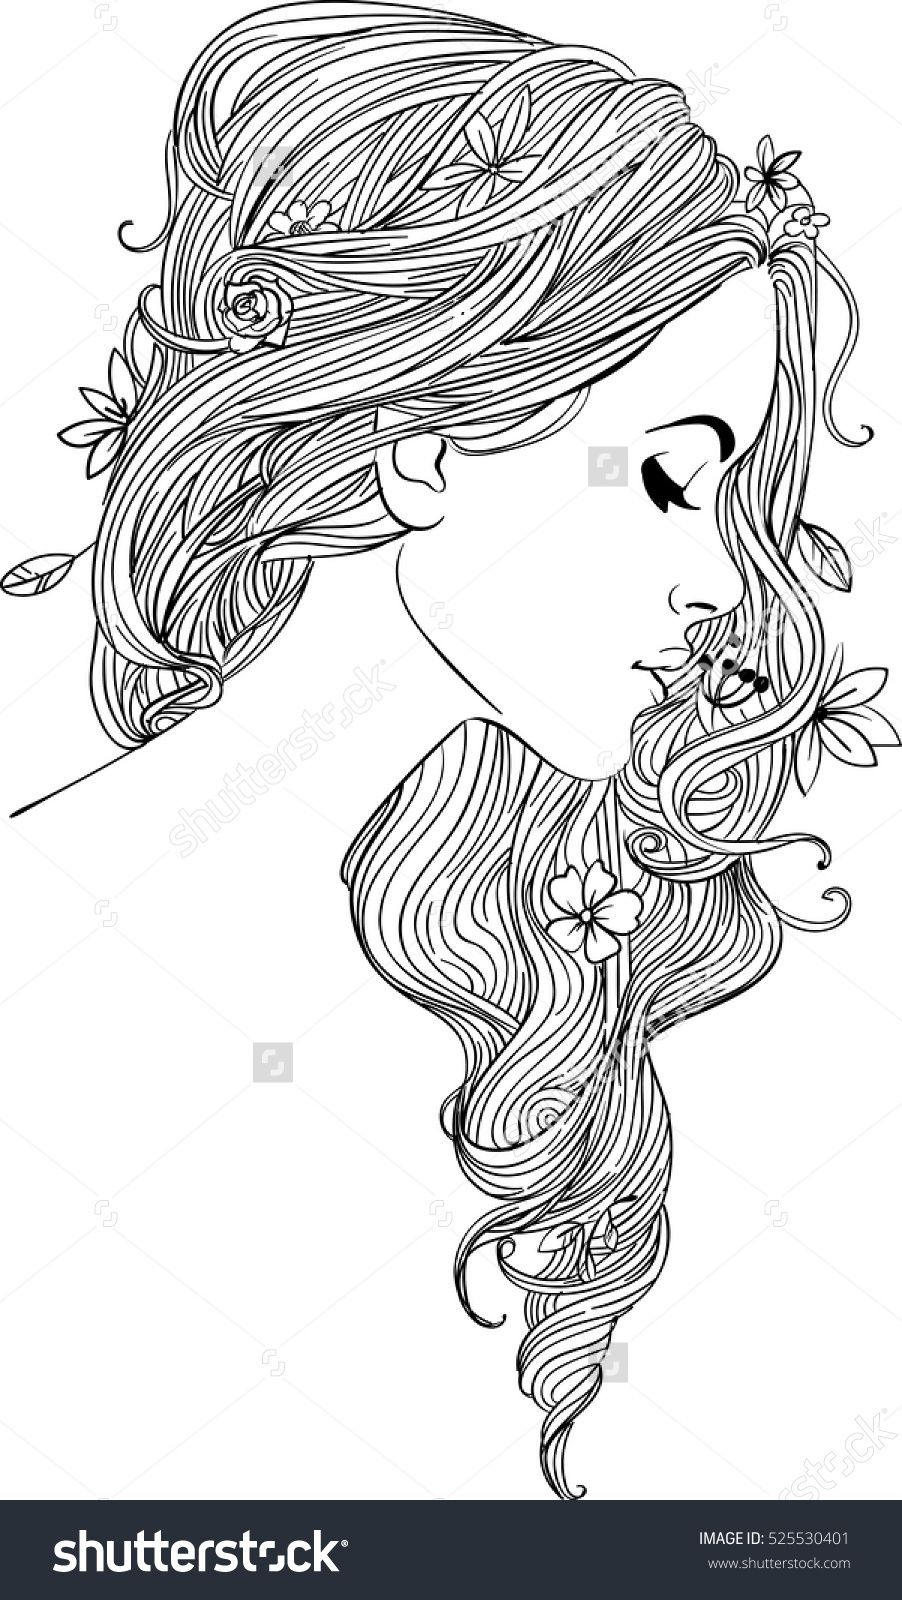 girl's profile | Coloring book art, Coloring pages, Cute coloring ...